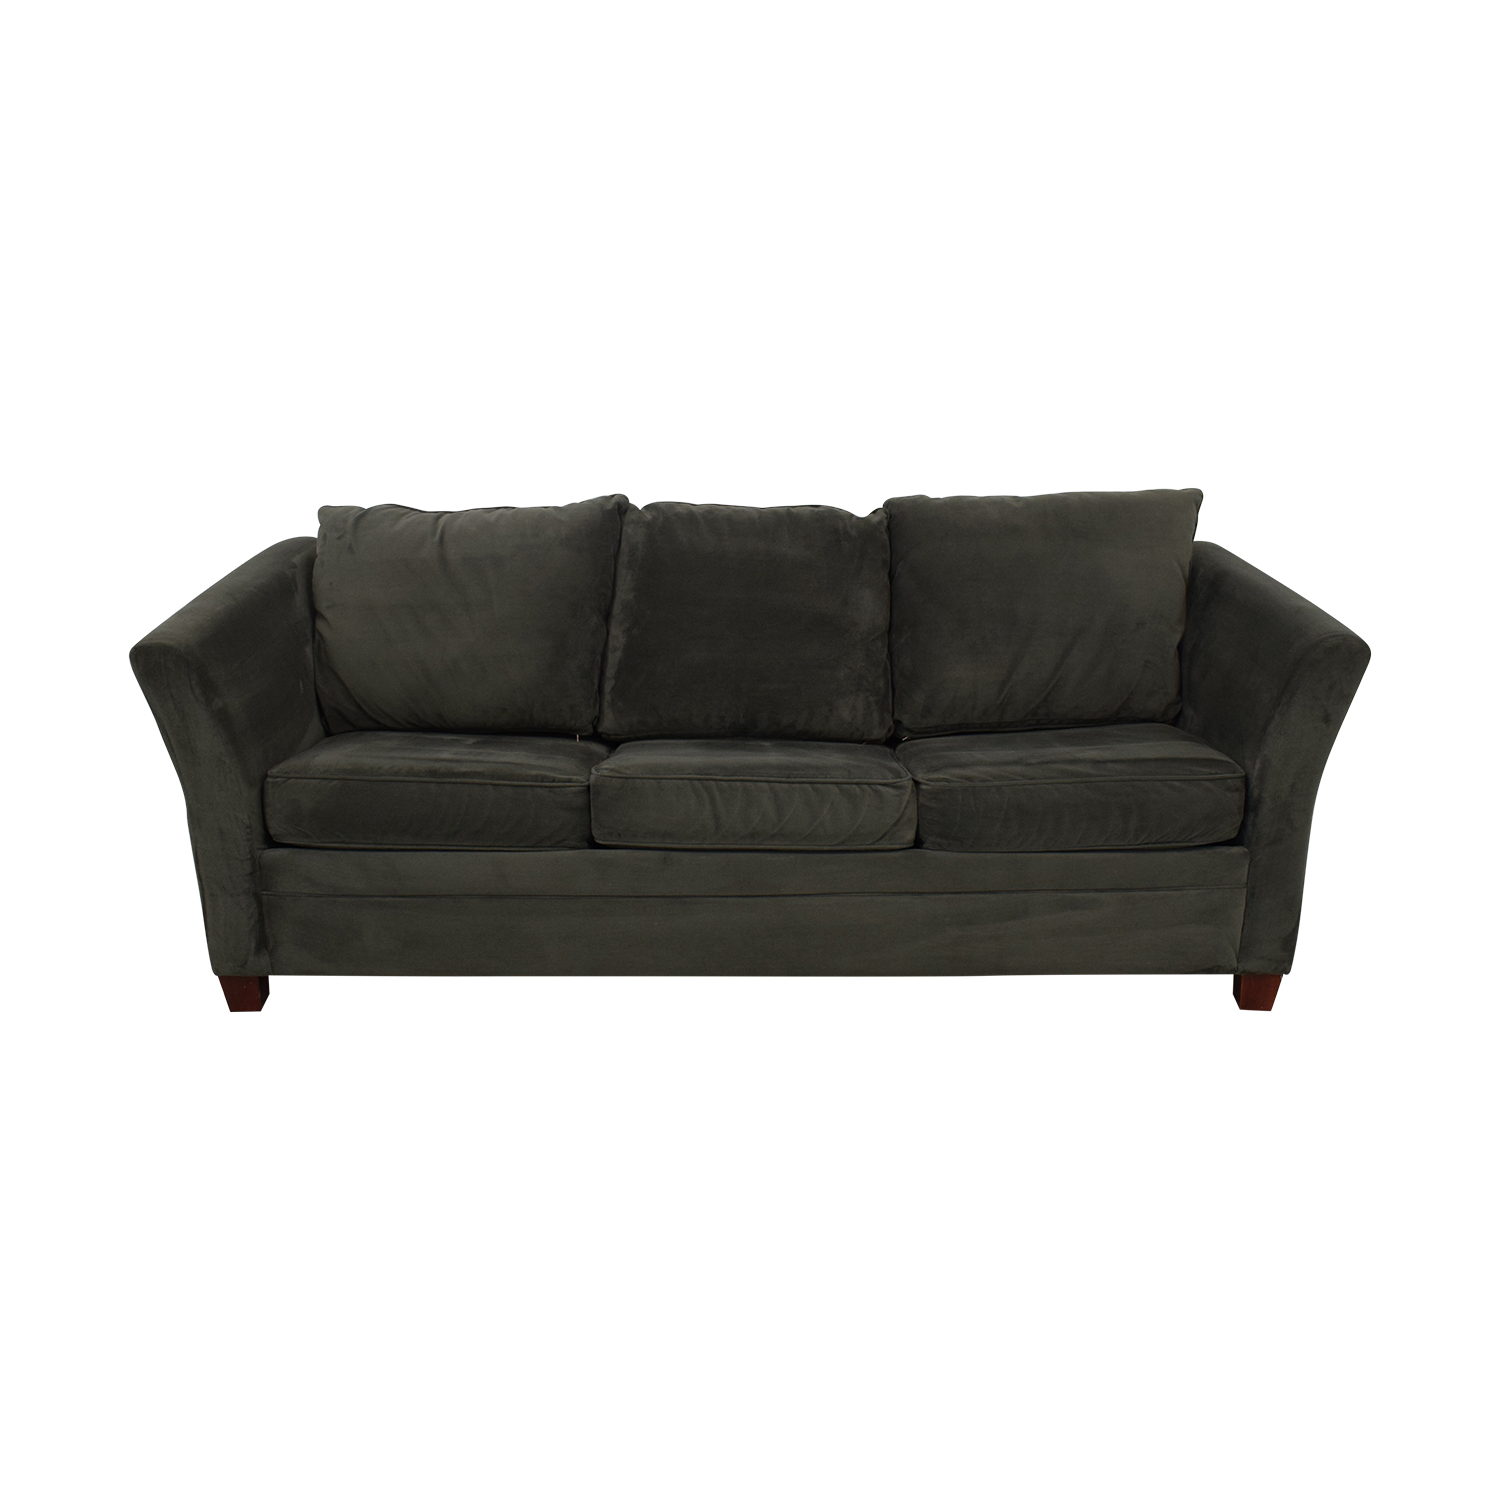 shop Klaussner Taylor Queen Sleeper Sofa Klaussner Sofas